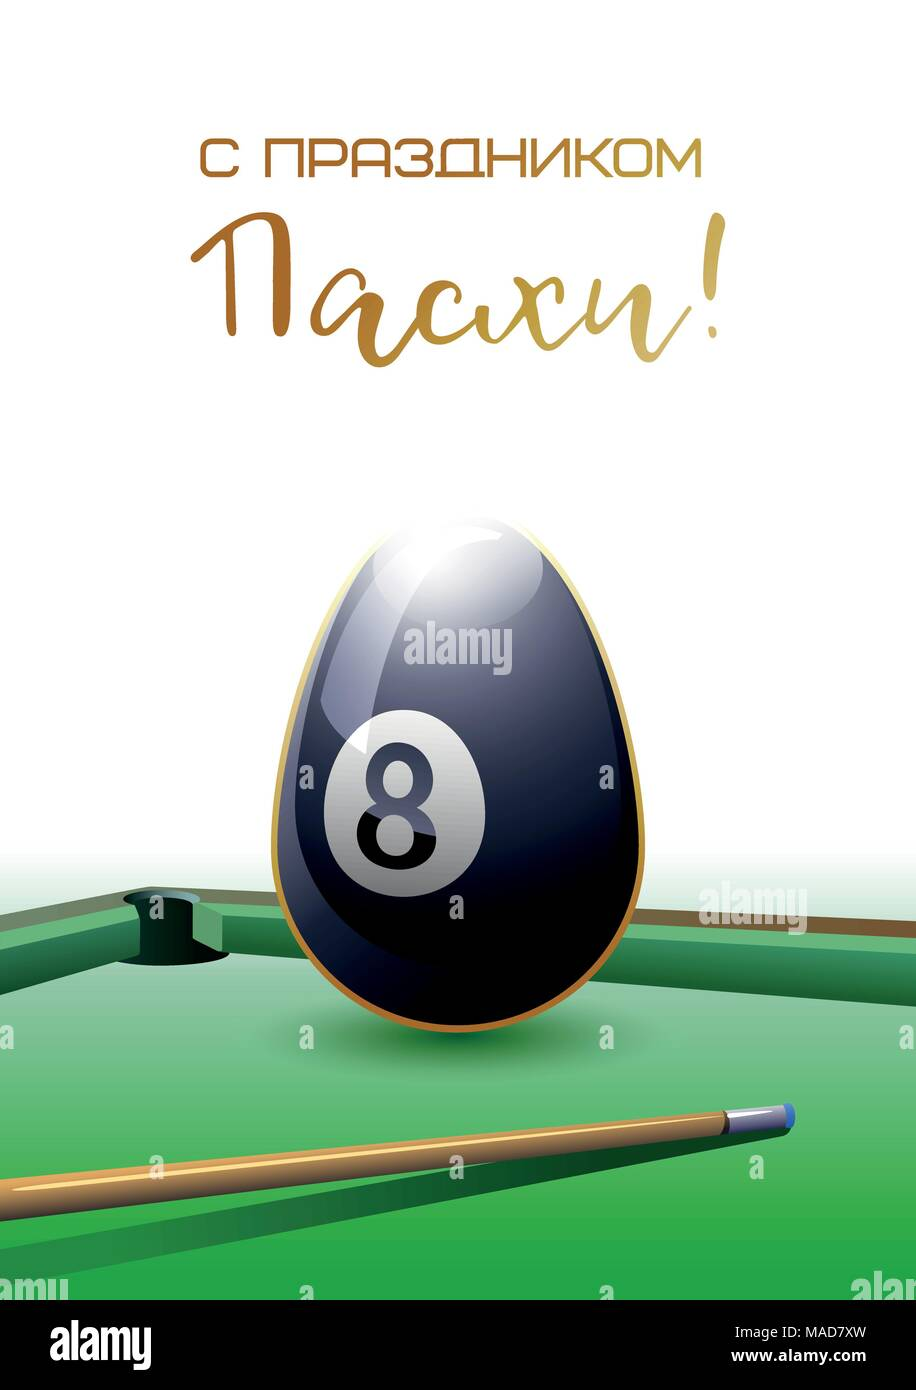 'Happy Easter' script in russian language. Sports greeting card. A realistic Easter egg in the shape of a billiard ball. Billiard table and billiard c - Stock Image